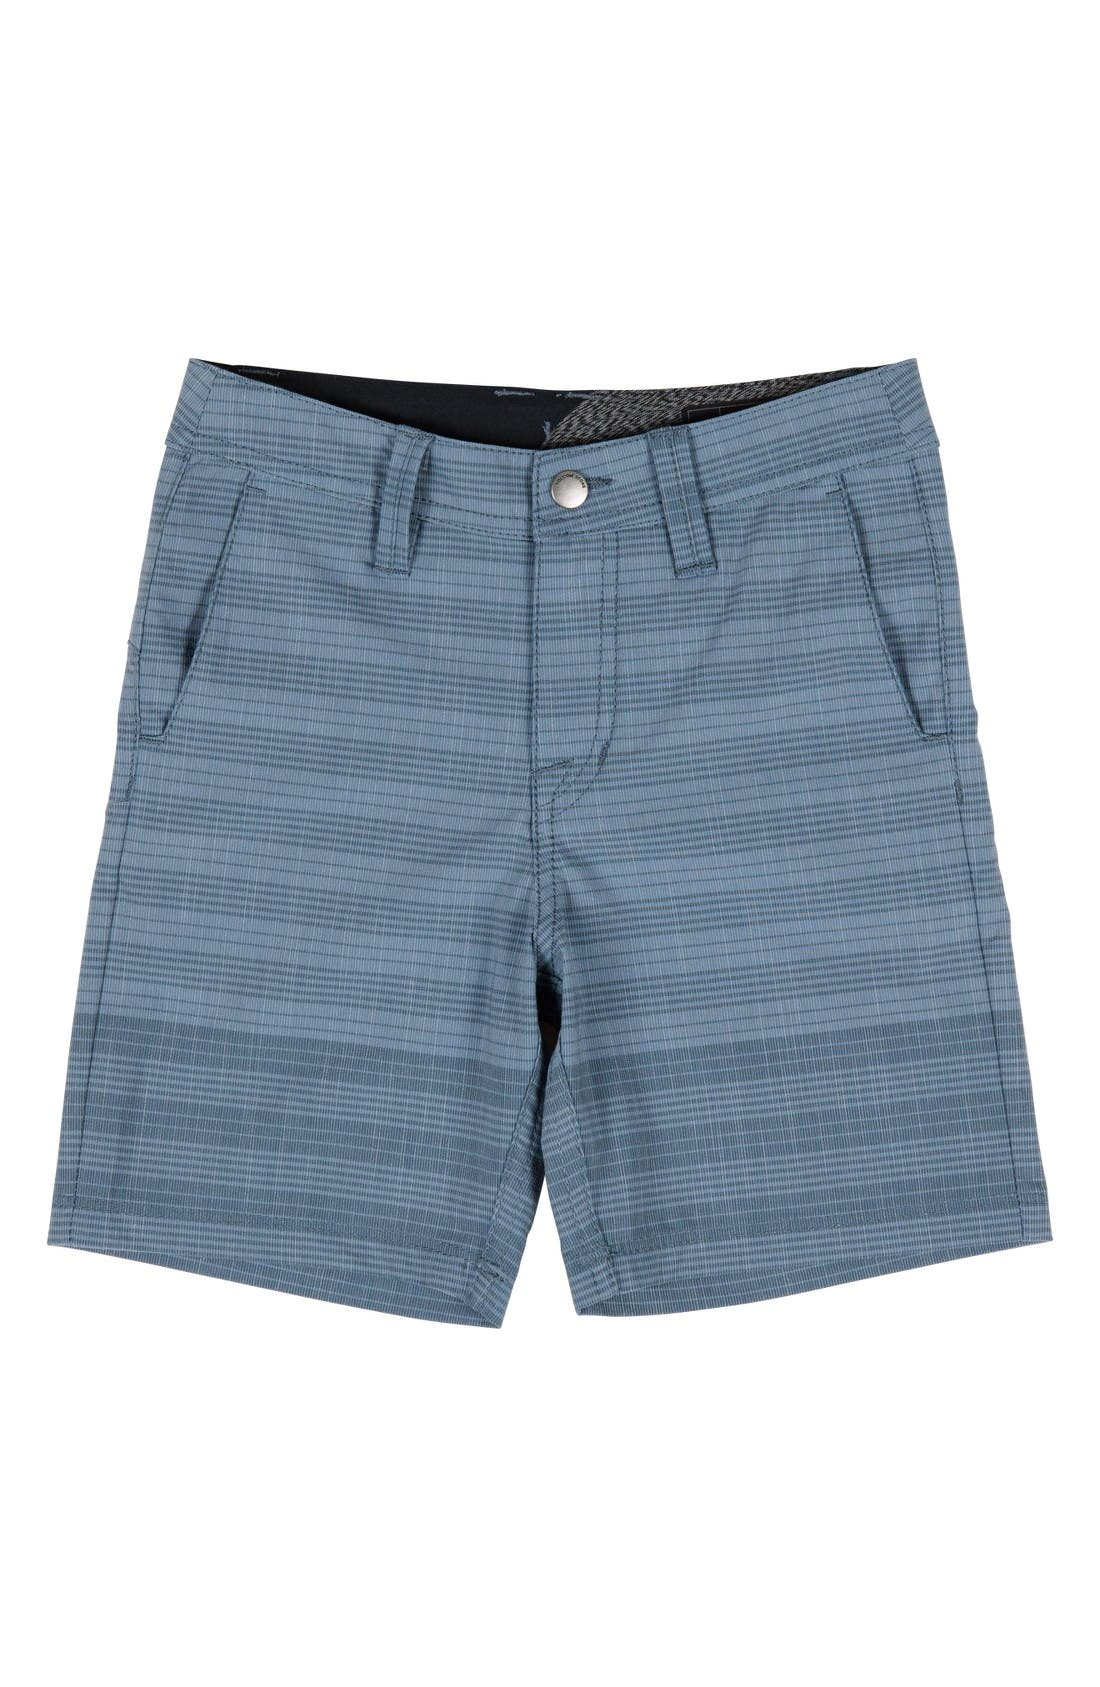 Alternate Image 1 Selected - Volcom Surf N' Turf Hybrid Shorts (Toddler Boys & Little Boys)